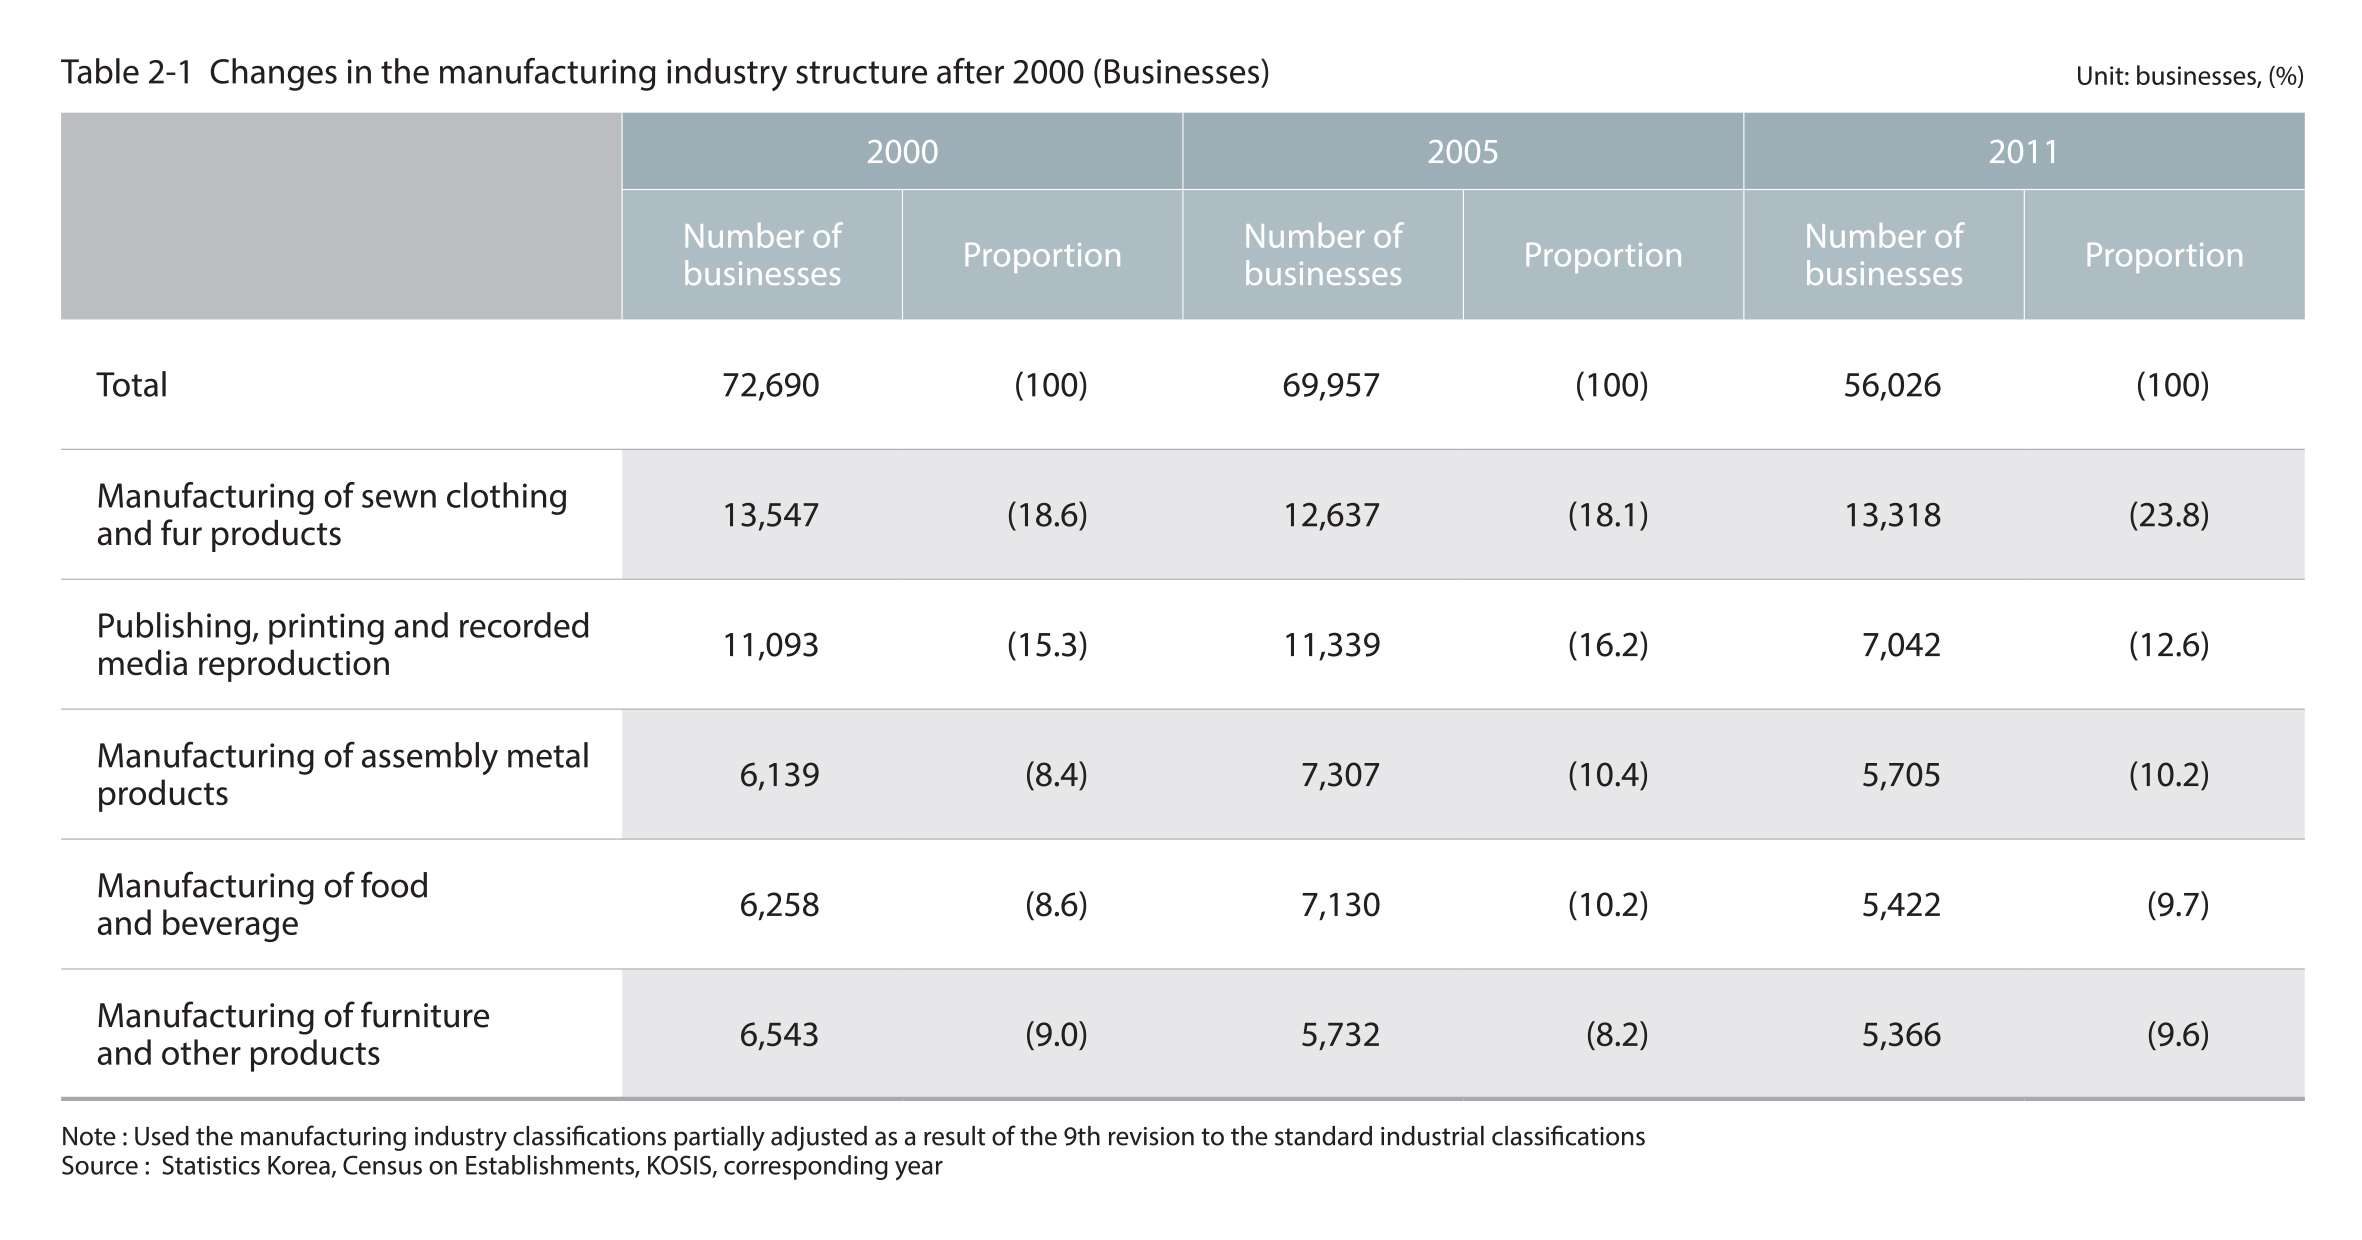 Changes in the manufacturing industry structure after 2000 (Businesses)